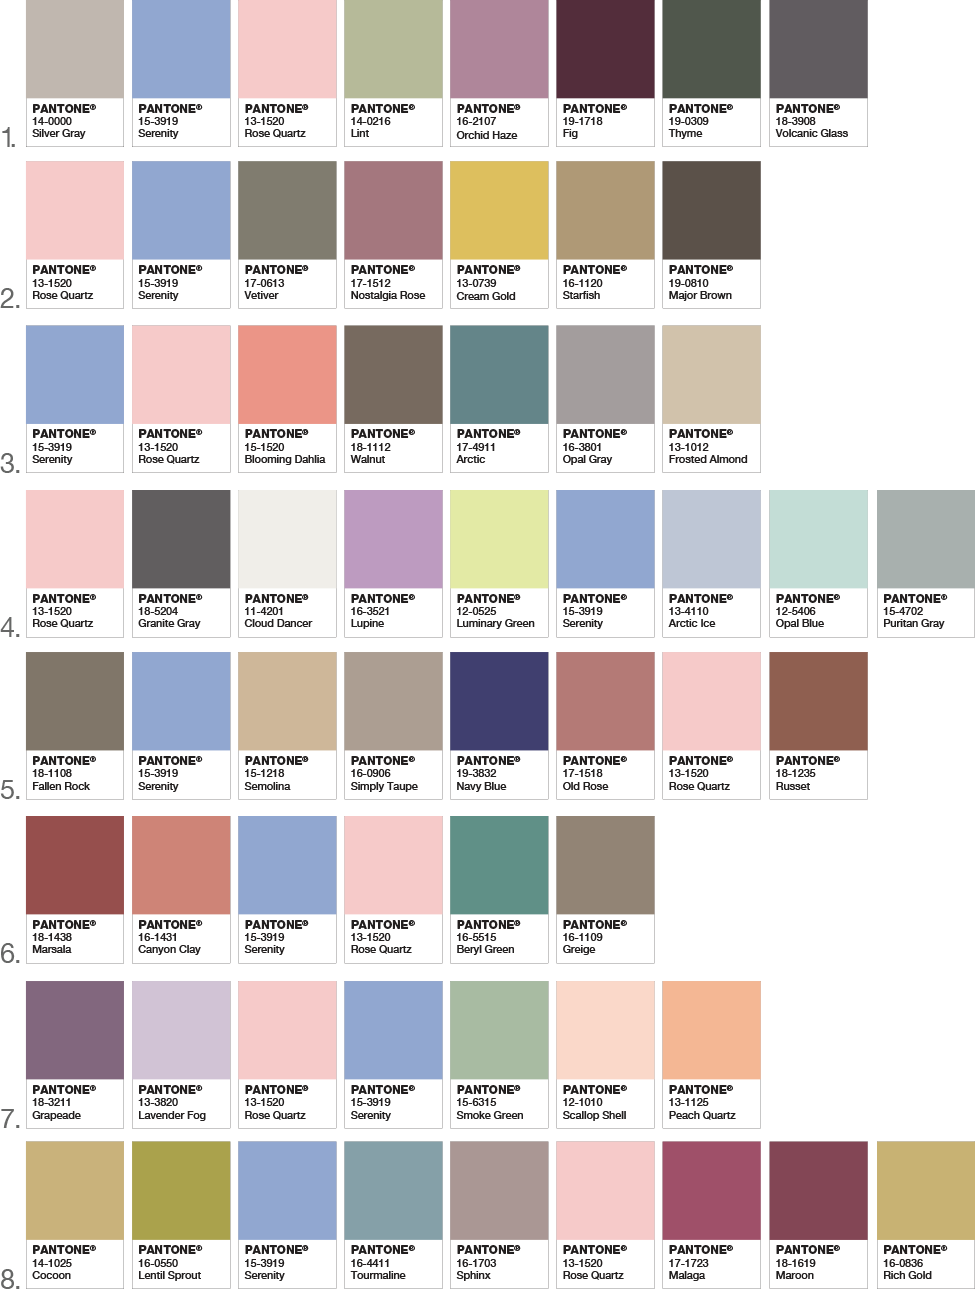 color inspiration for your home decor color palettes that co ordinate with pantones colors - Home Decor Color Palettes